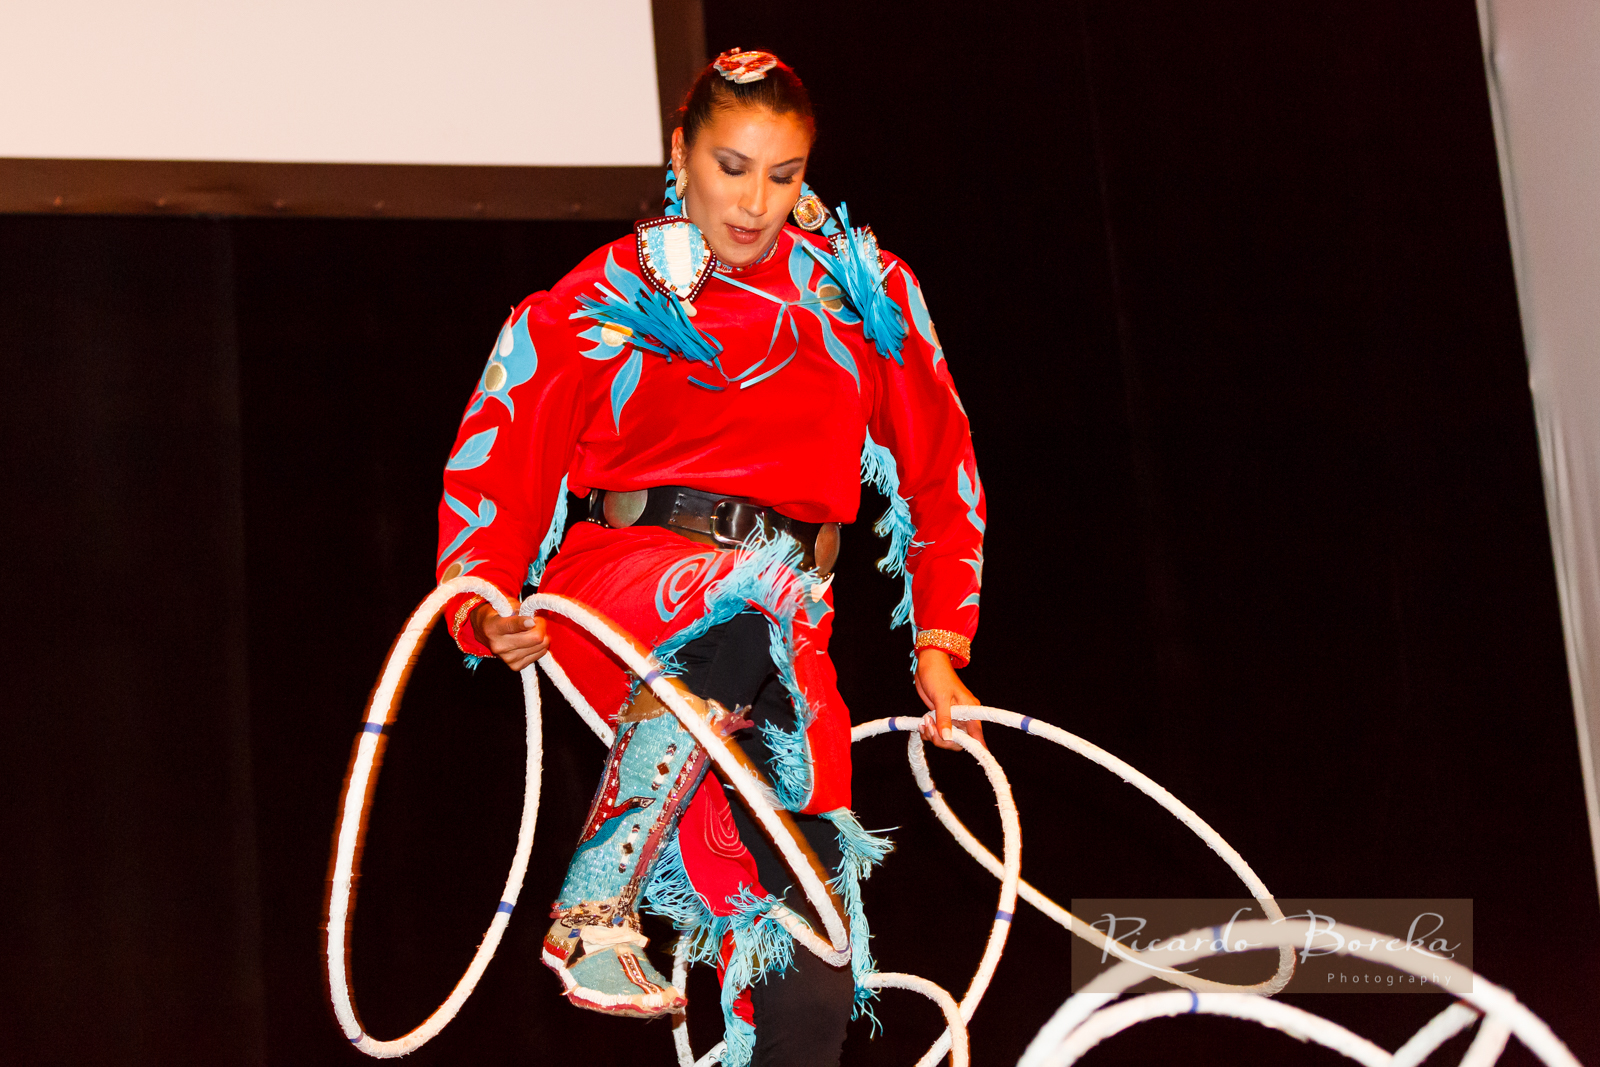 photograph of first nations woman dancing with hoops, wearing a red and blue costume